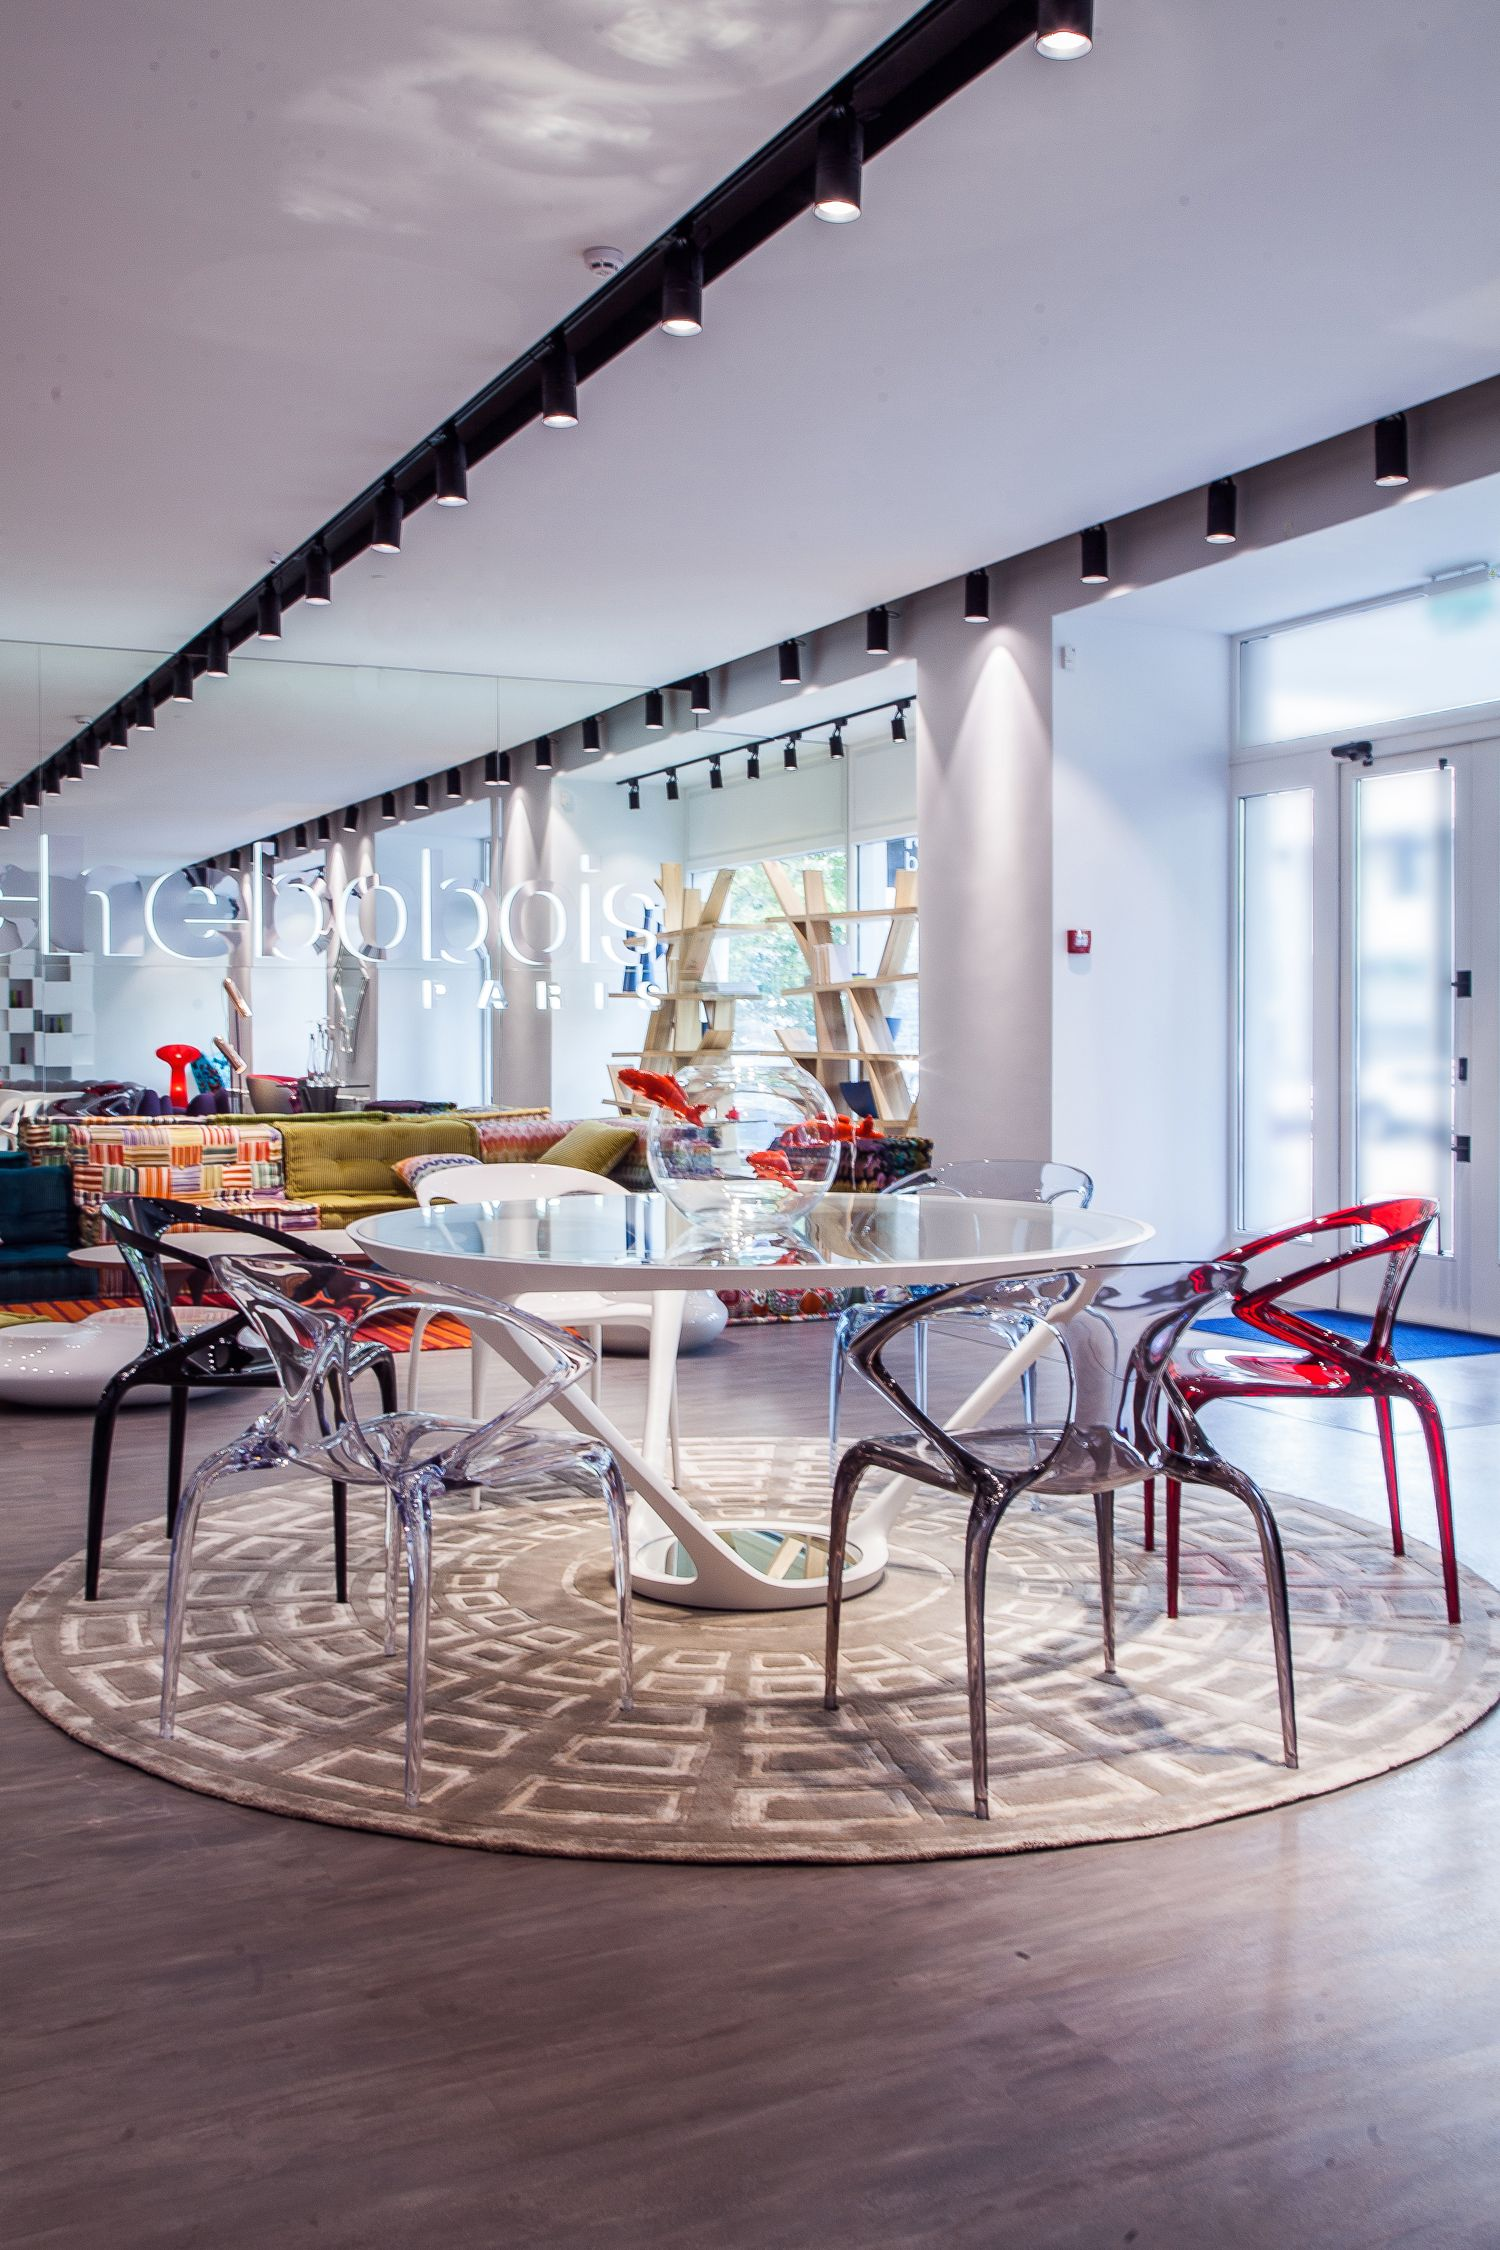 Roche Bobois Kiev Ukraine Ora Ito Dining Table And Ava Chairs Showroom Display